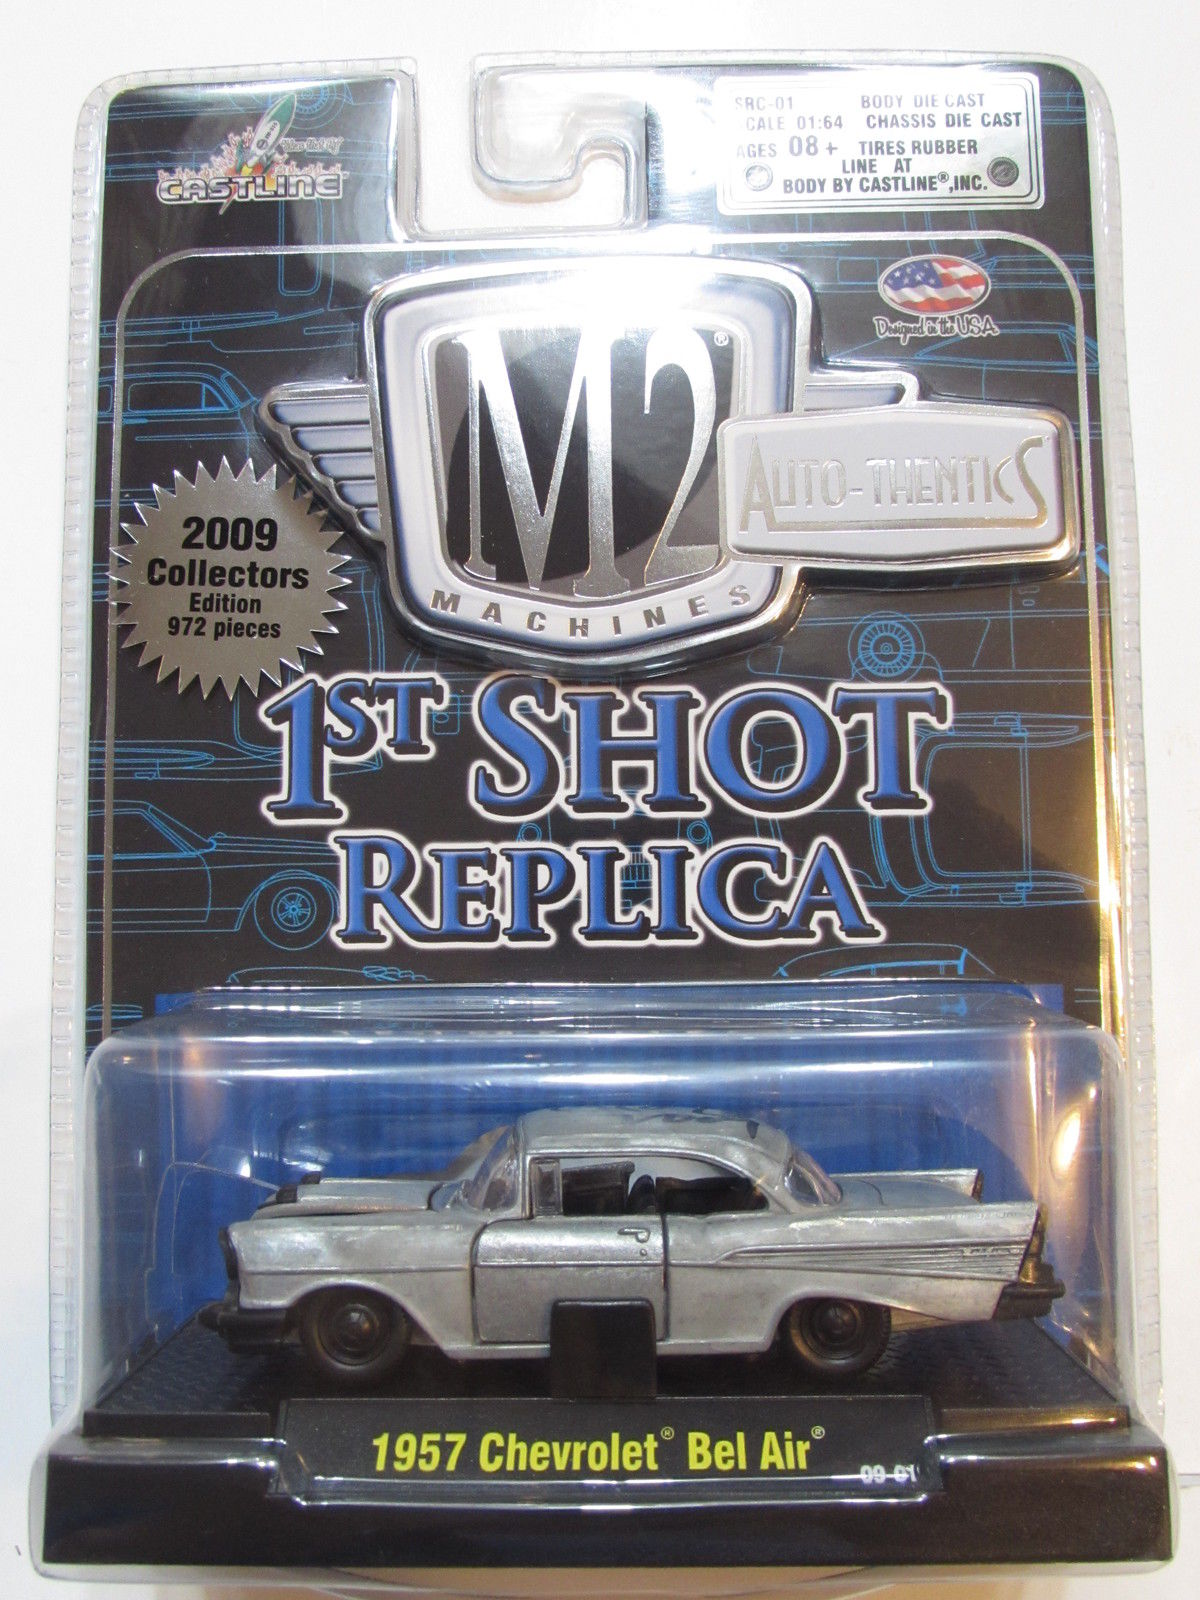 M2 MACHINES 1ST SHOT REPLICA 1967 CHEVROLET BEL AIR RAW - SIGNED - 972 MADE